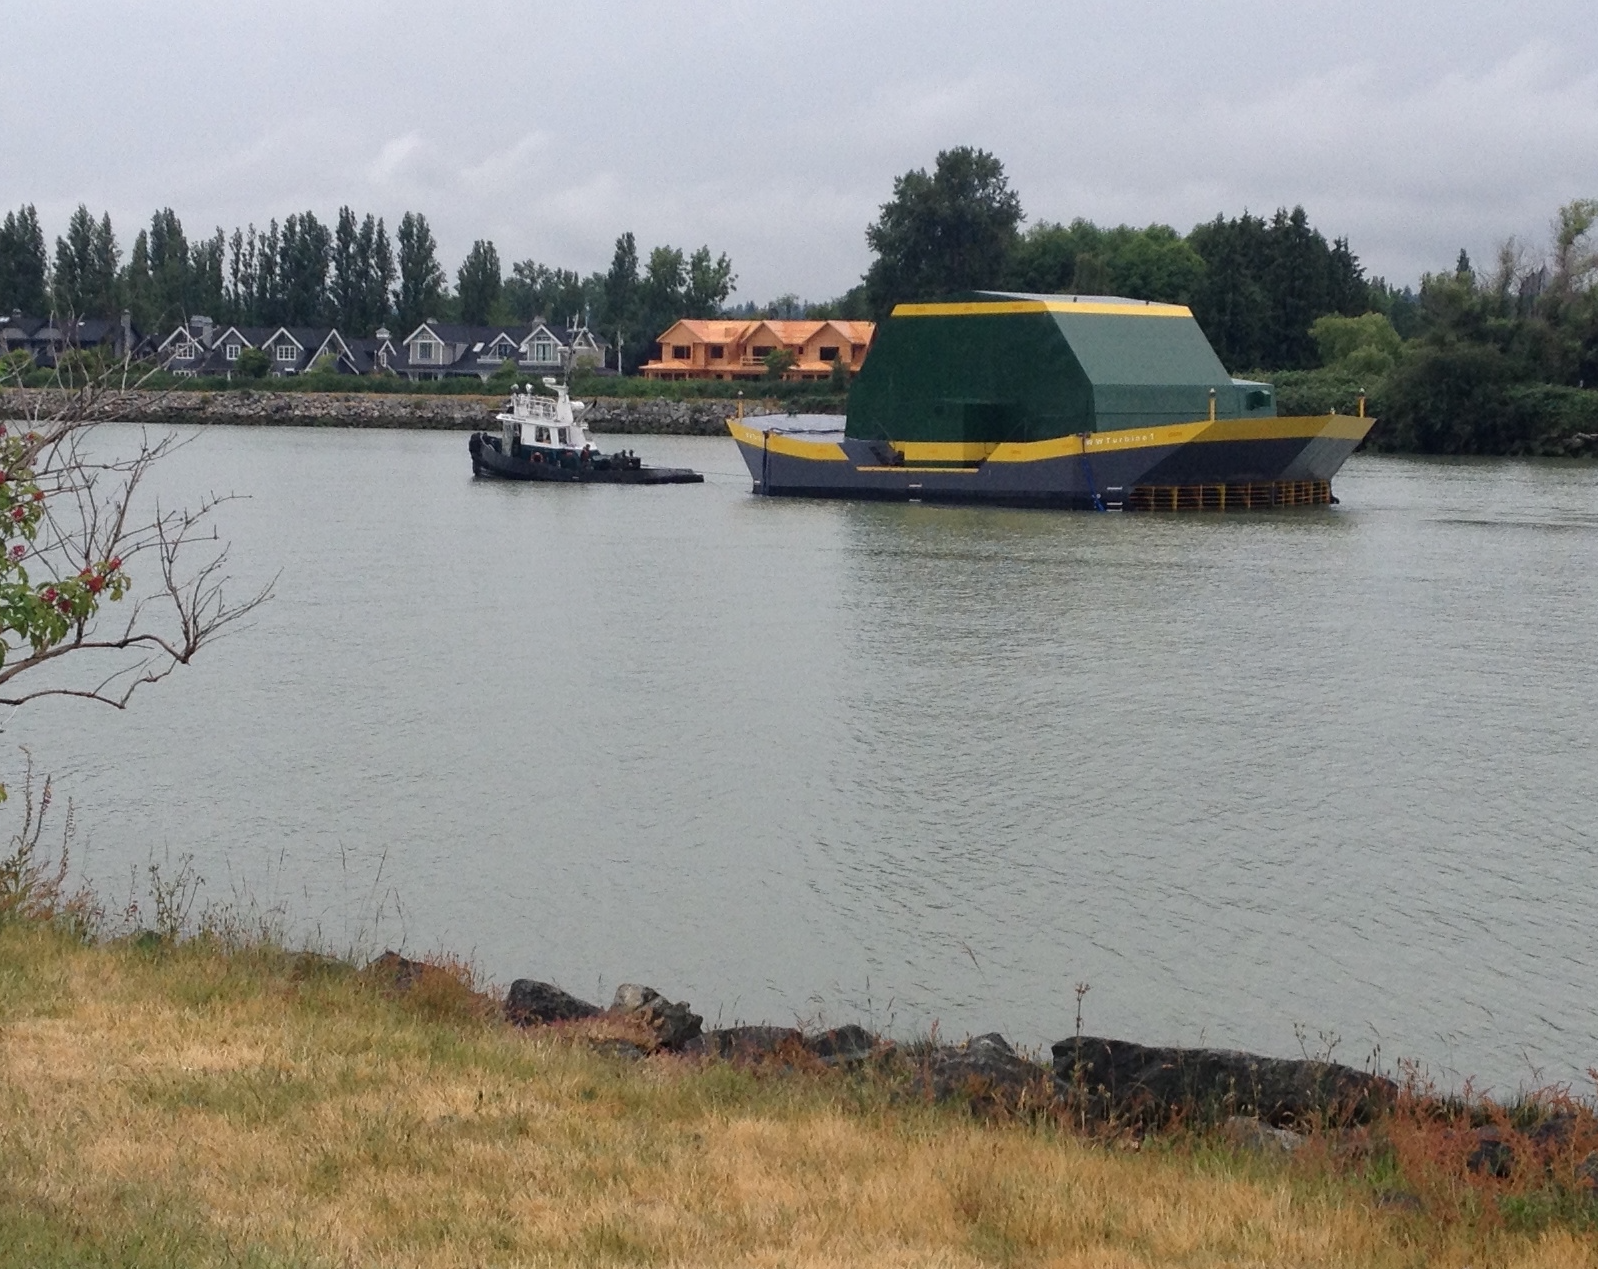 The Water Wall Turbine being towed from Richmond, BC along the North Arm of the Fraser River, towards Dent Island.